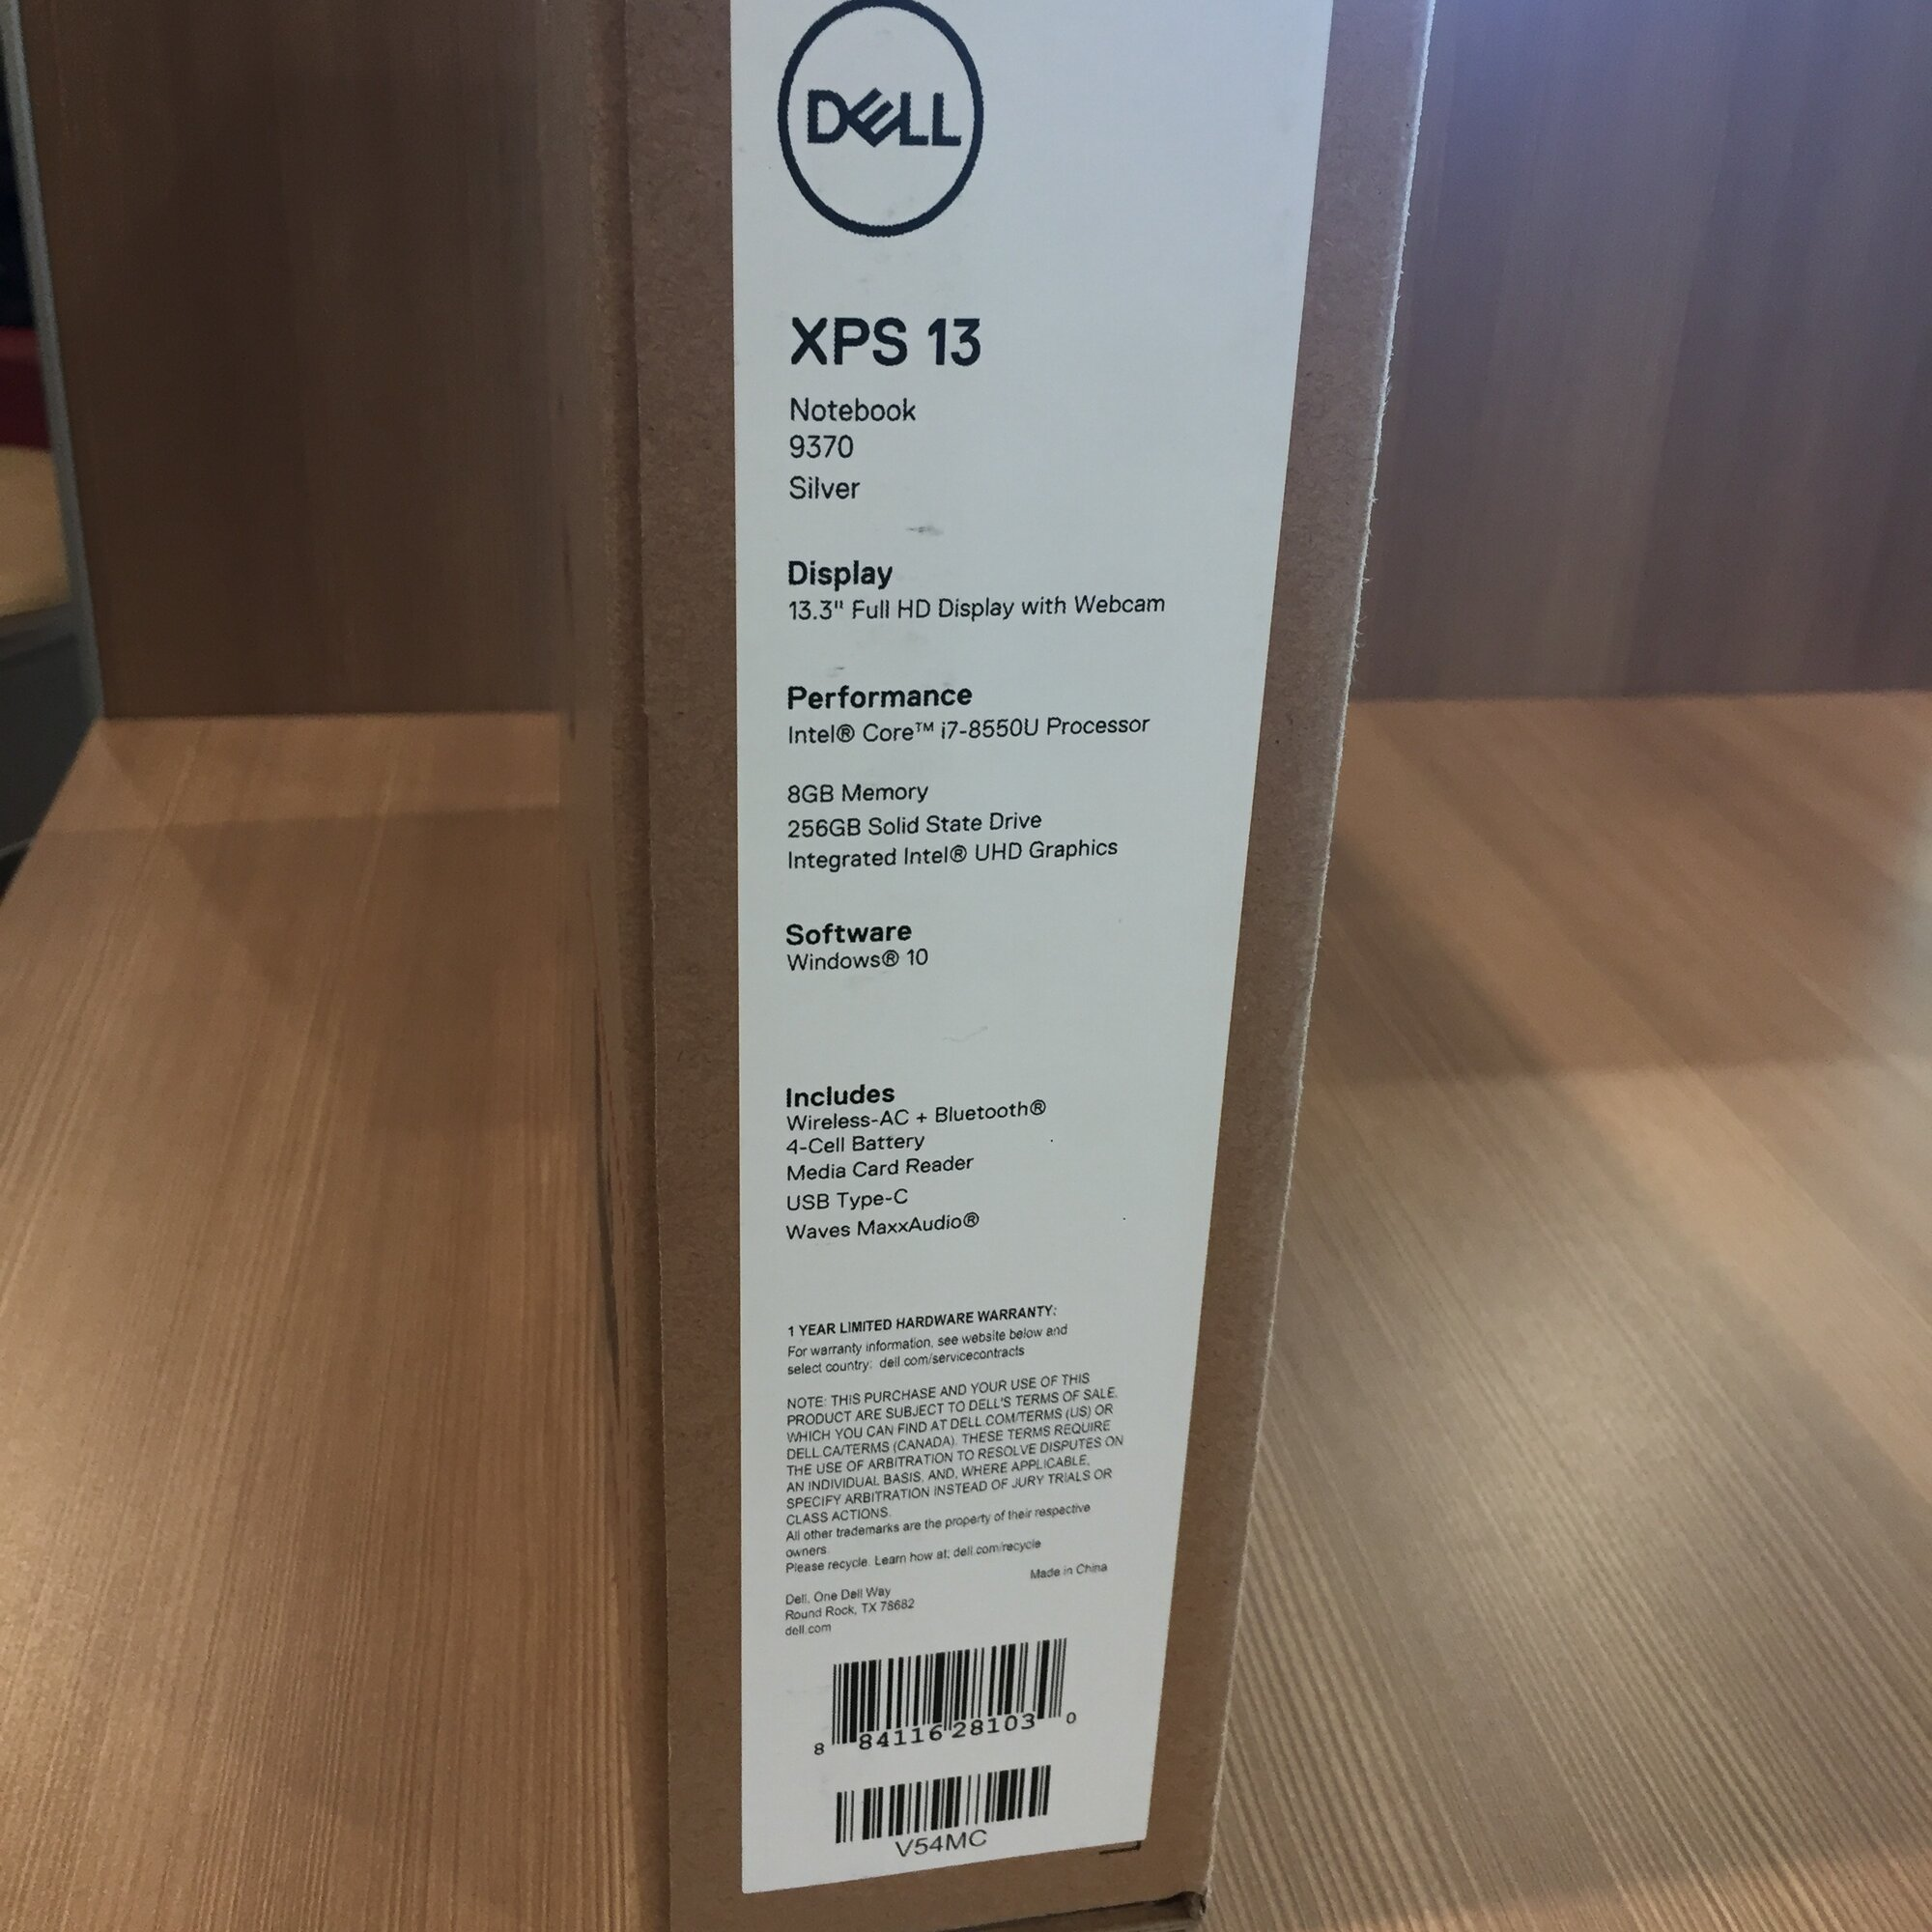 FS/FT: Brand New Dell XPS 9370 - CA | [H]ard|Forum